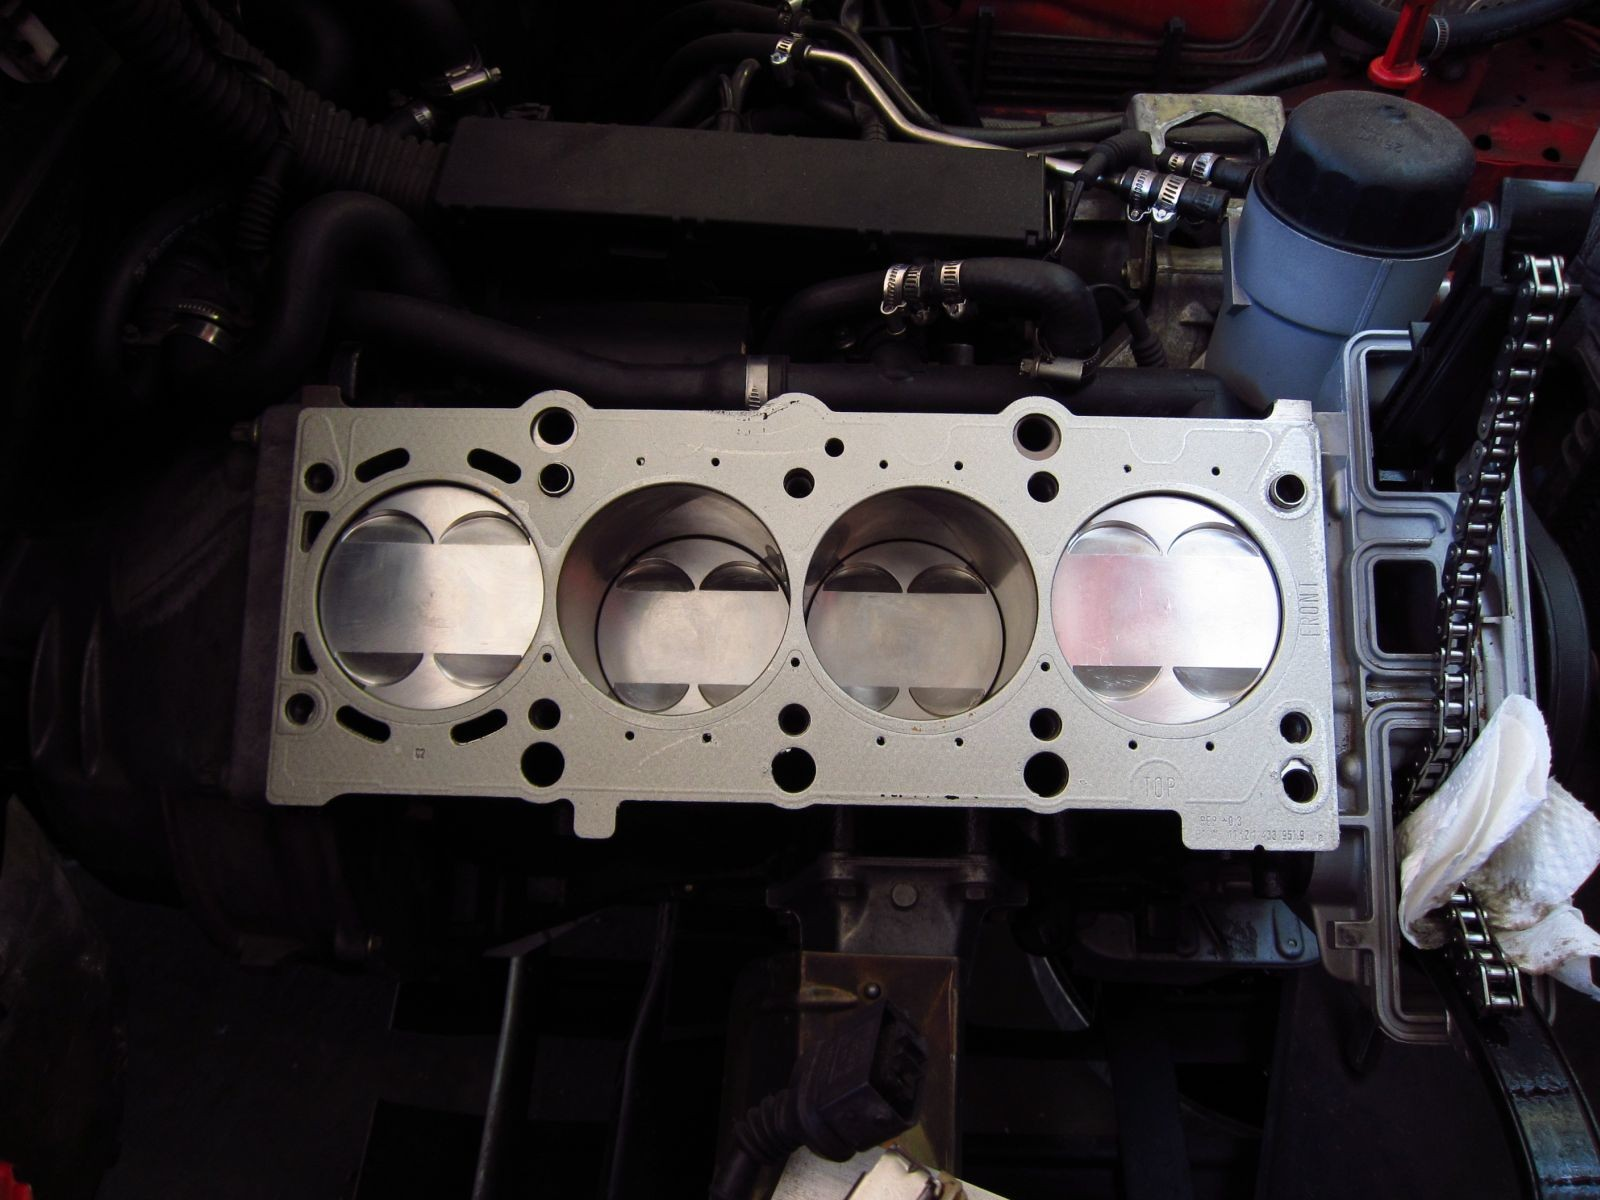 Bmw M44 Engine Diagram M44 Head Gasket On M42 R3vlimited forums Of Bmw M44 Engine Diagram